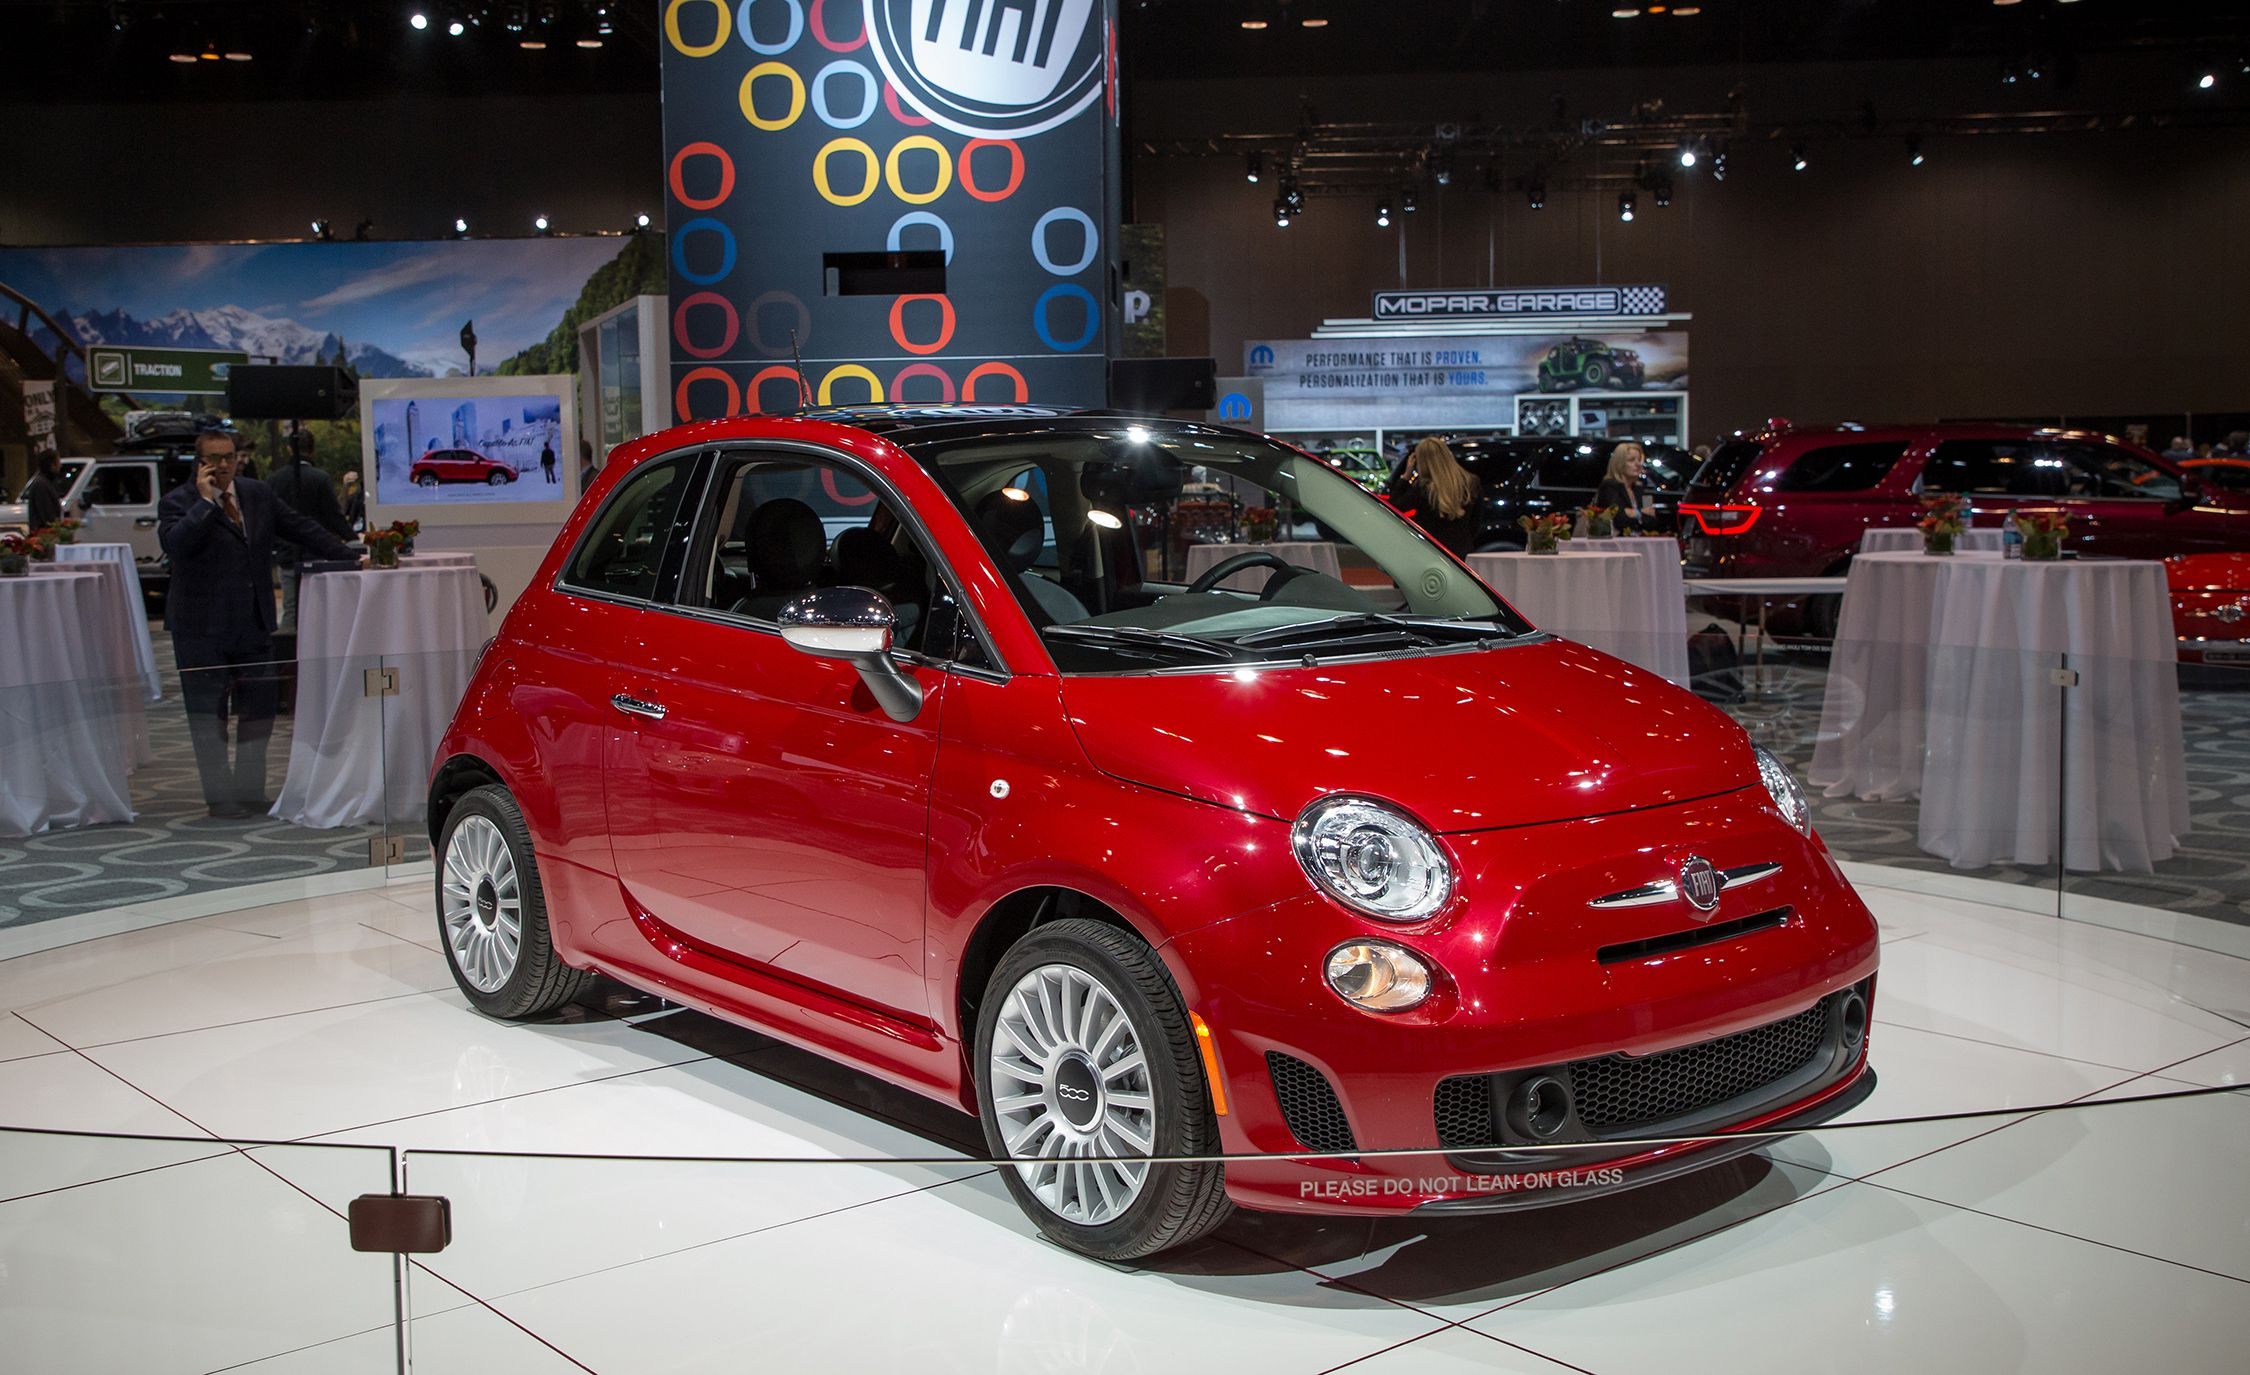 2018 fiat 500 s a turbo engine and more power news car and driver photo s original